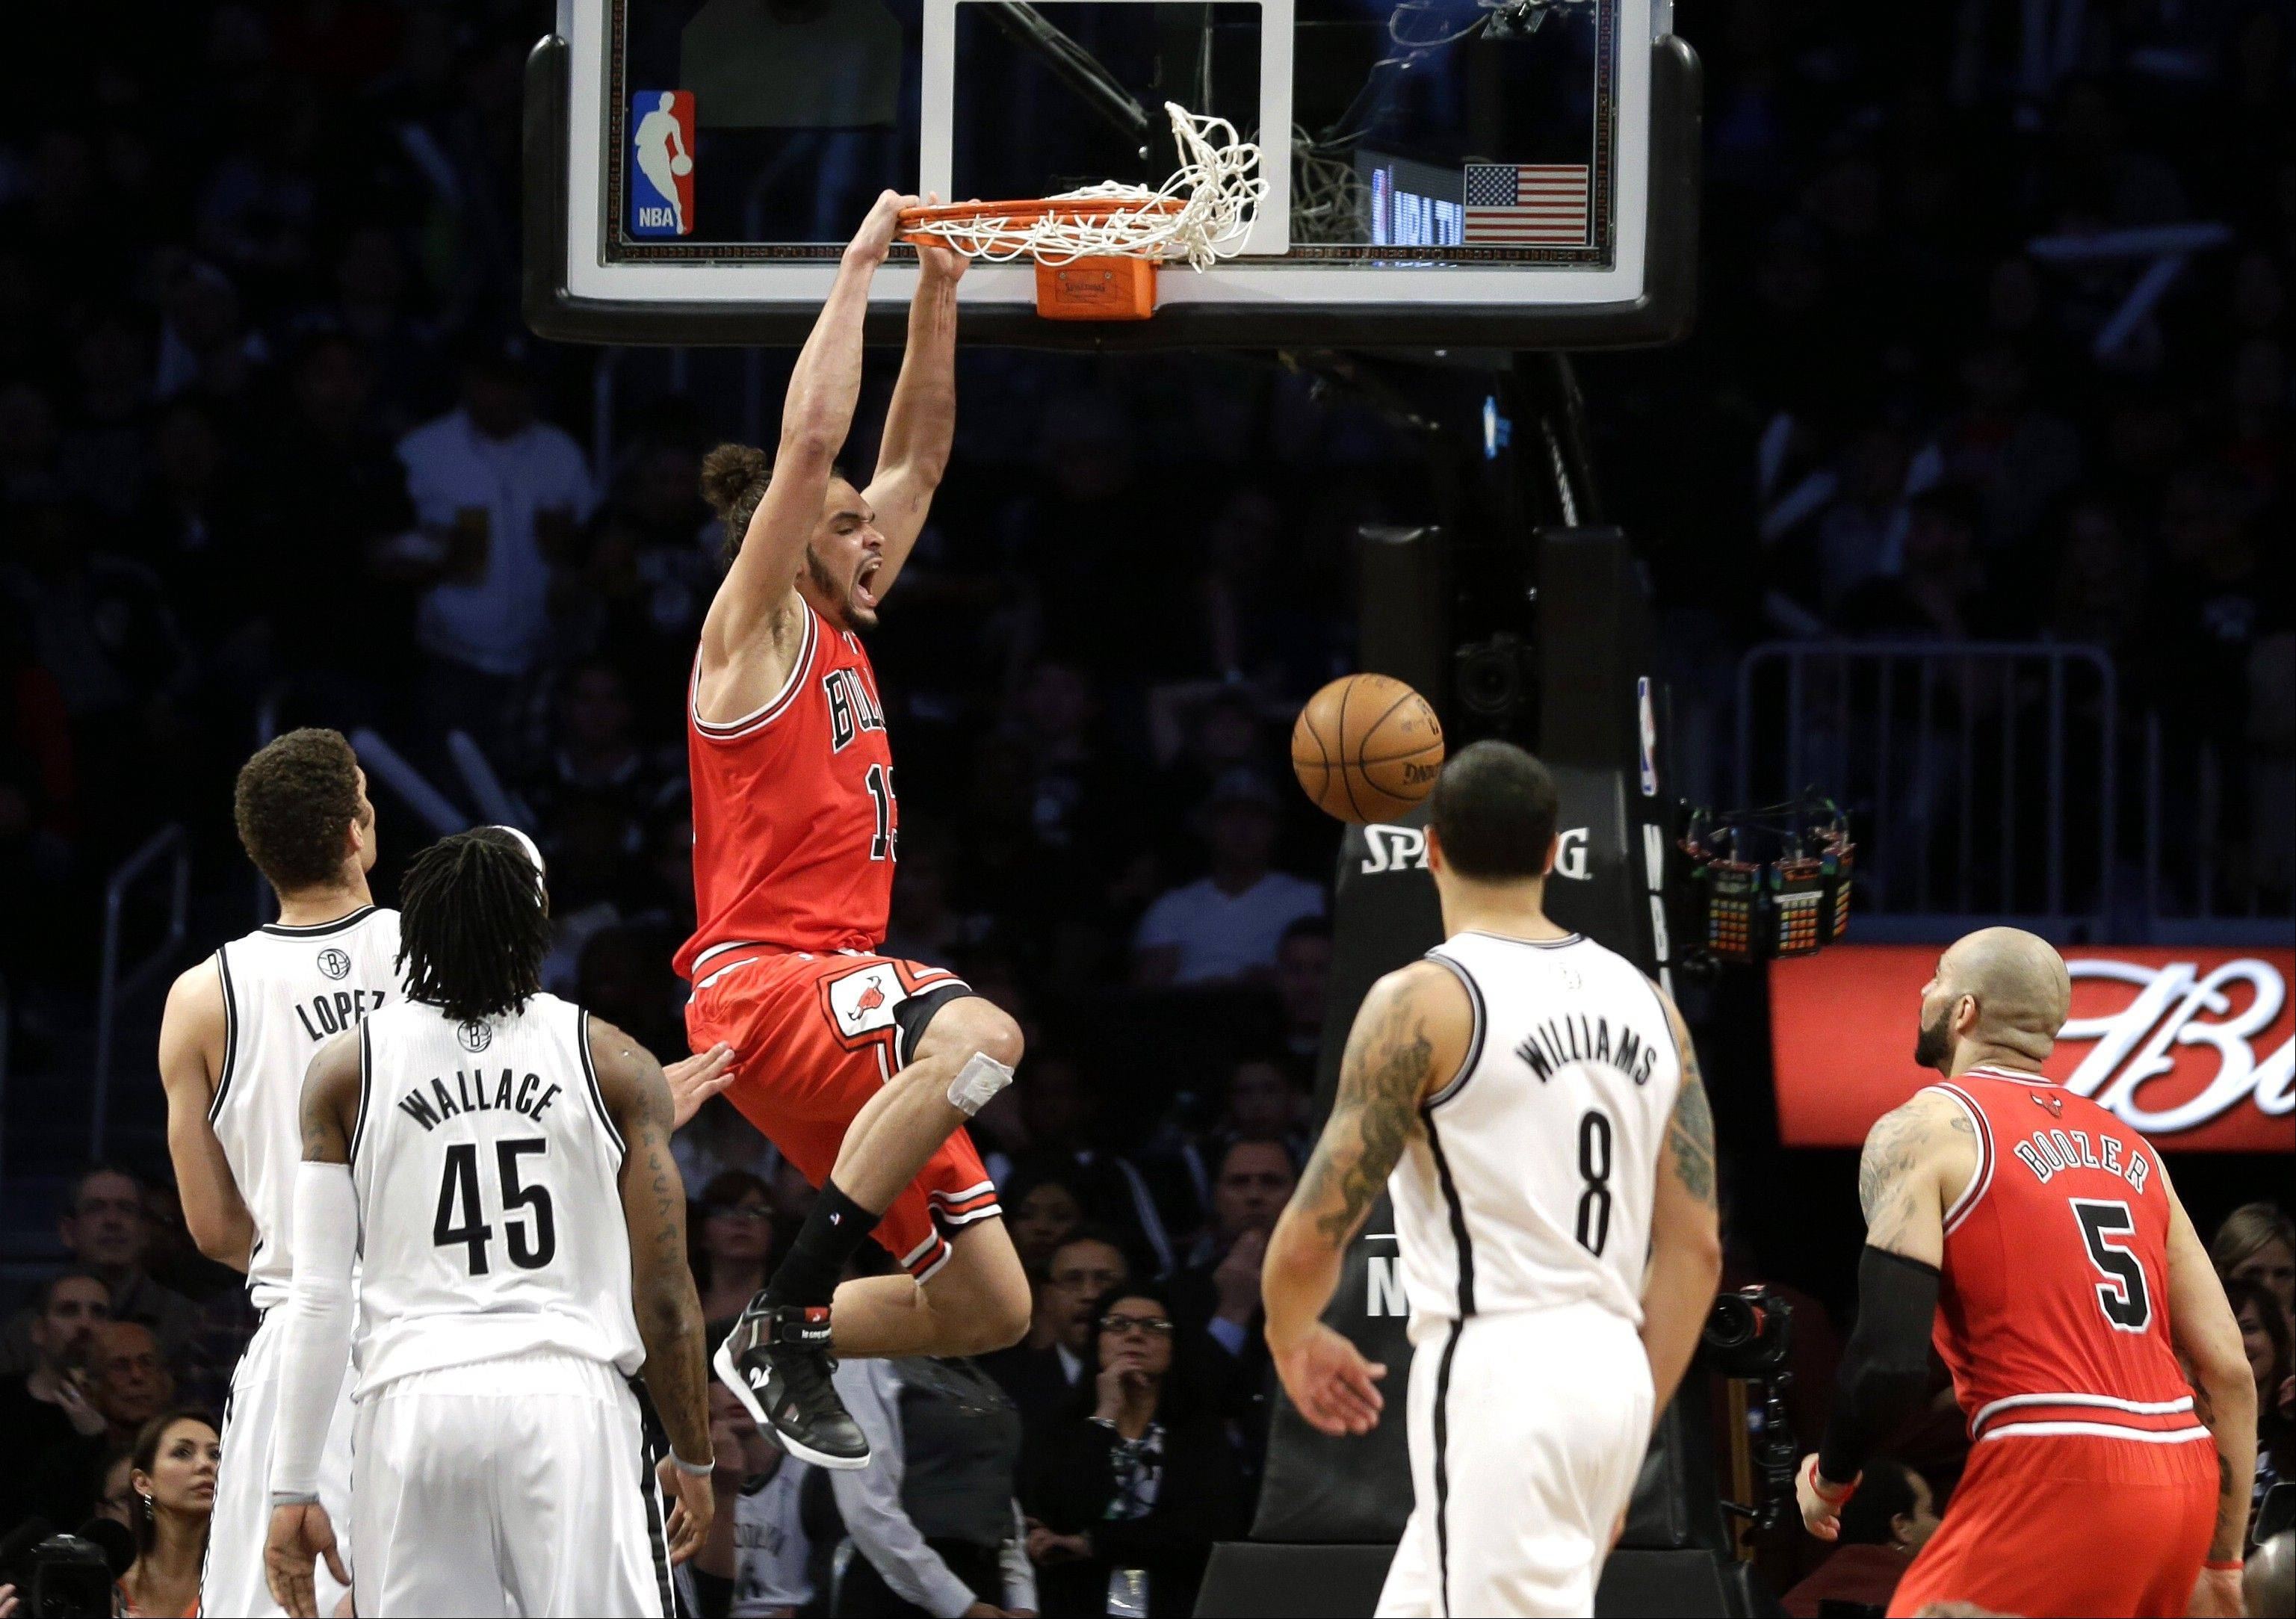 Bulls center Joakim Noah continues to slam home his points about extra effort and team play being keys to winning.